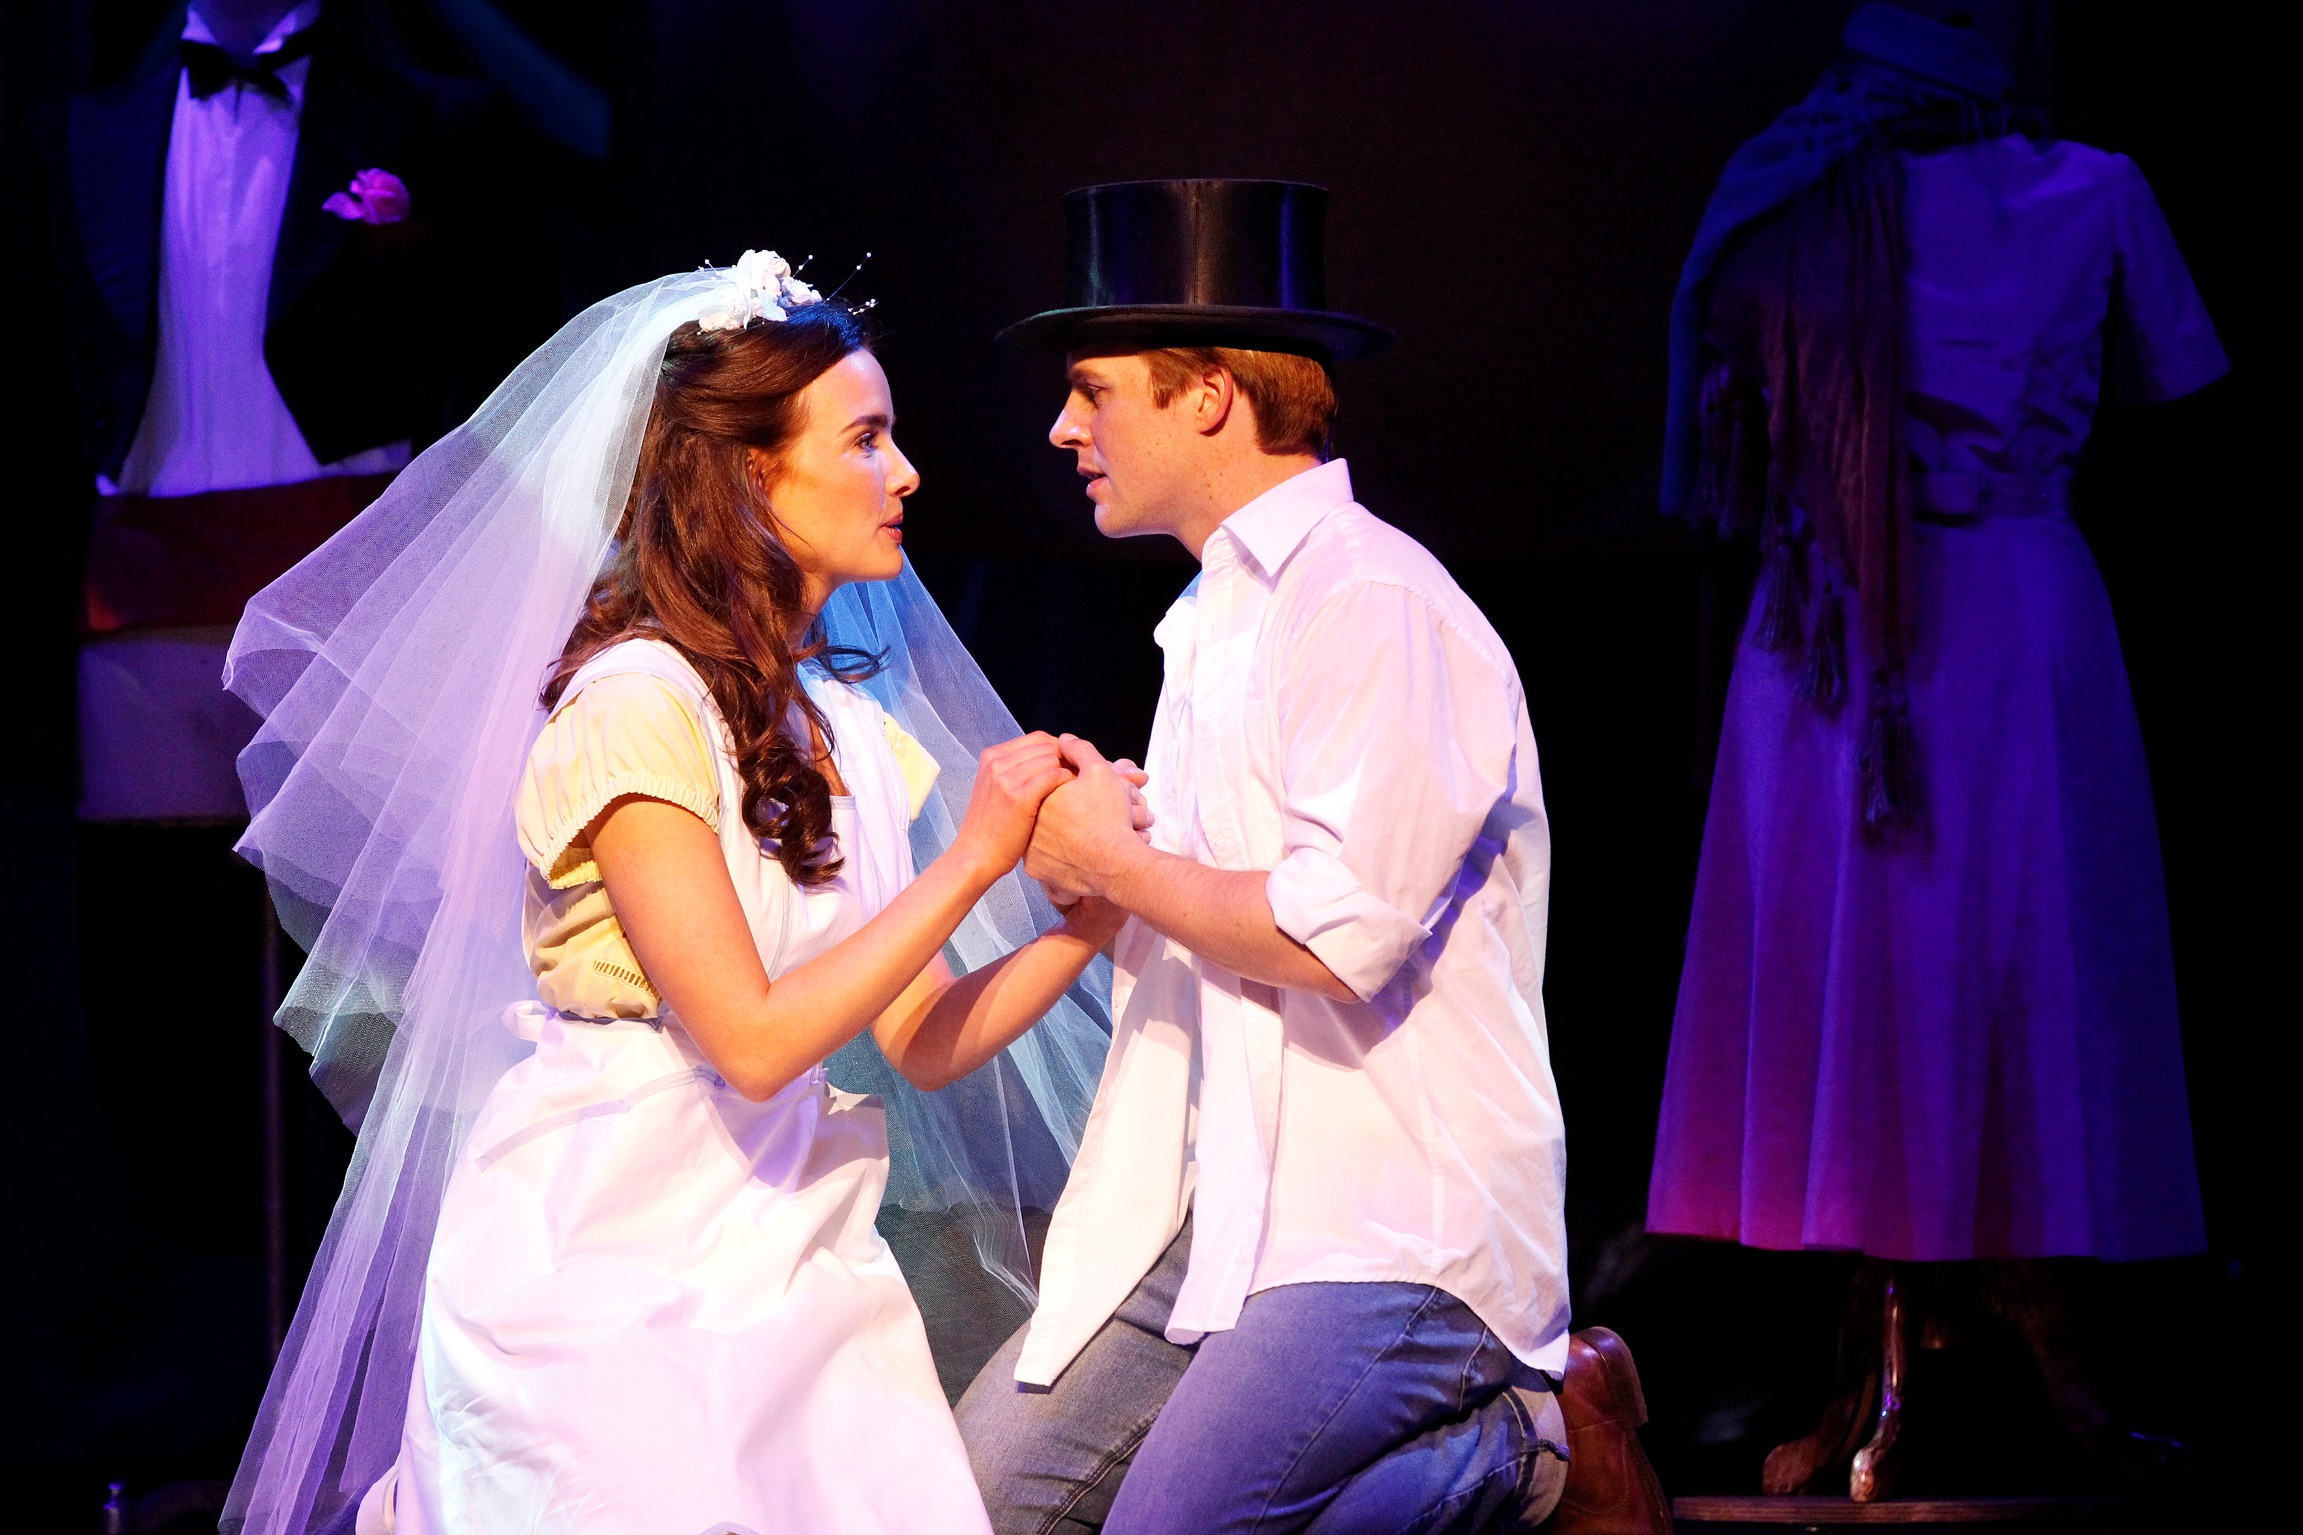 west side story critique The current touring production of west side story, showing at melbourne's luxurious regent theatre, comes to us from the 2009 broadway revival importantly, in.